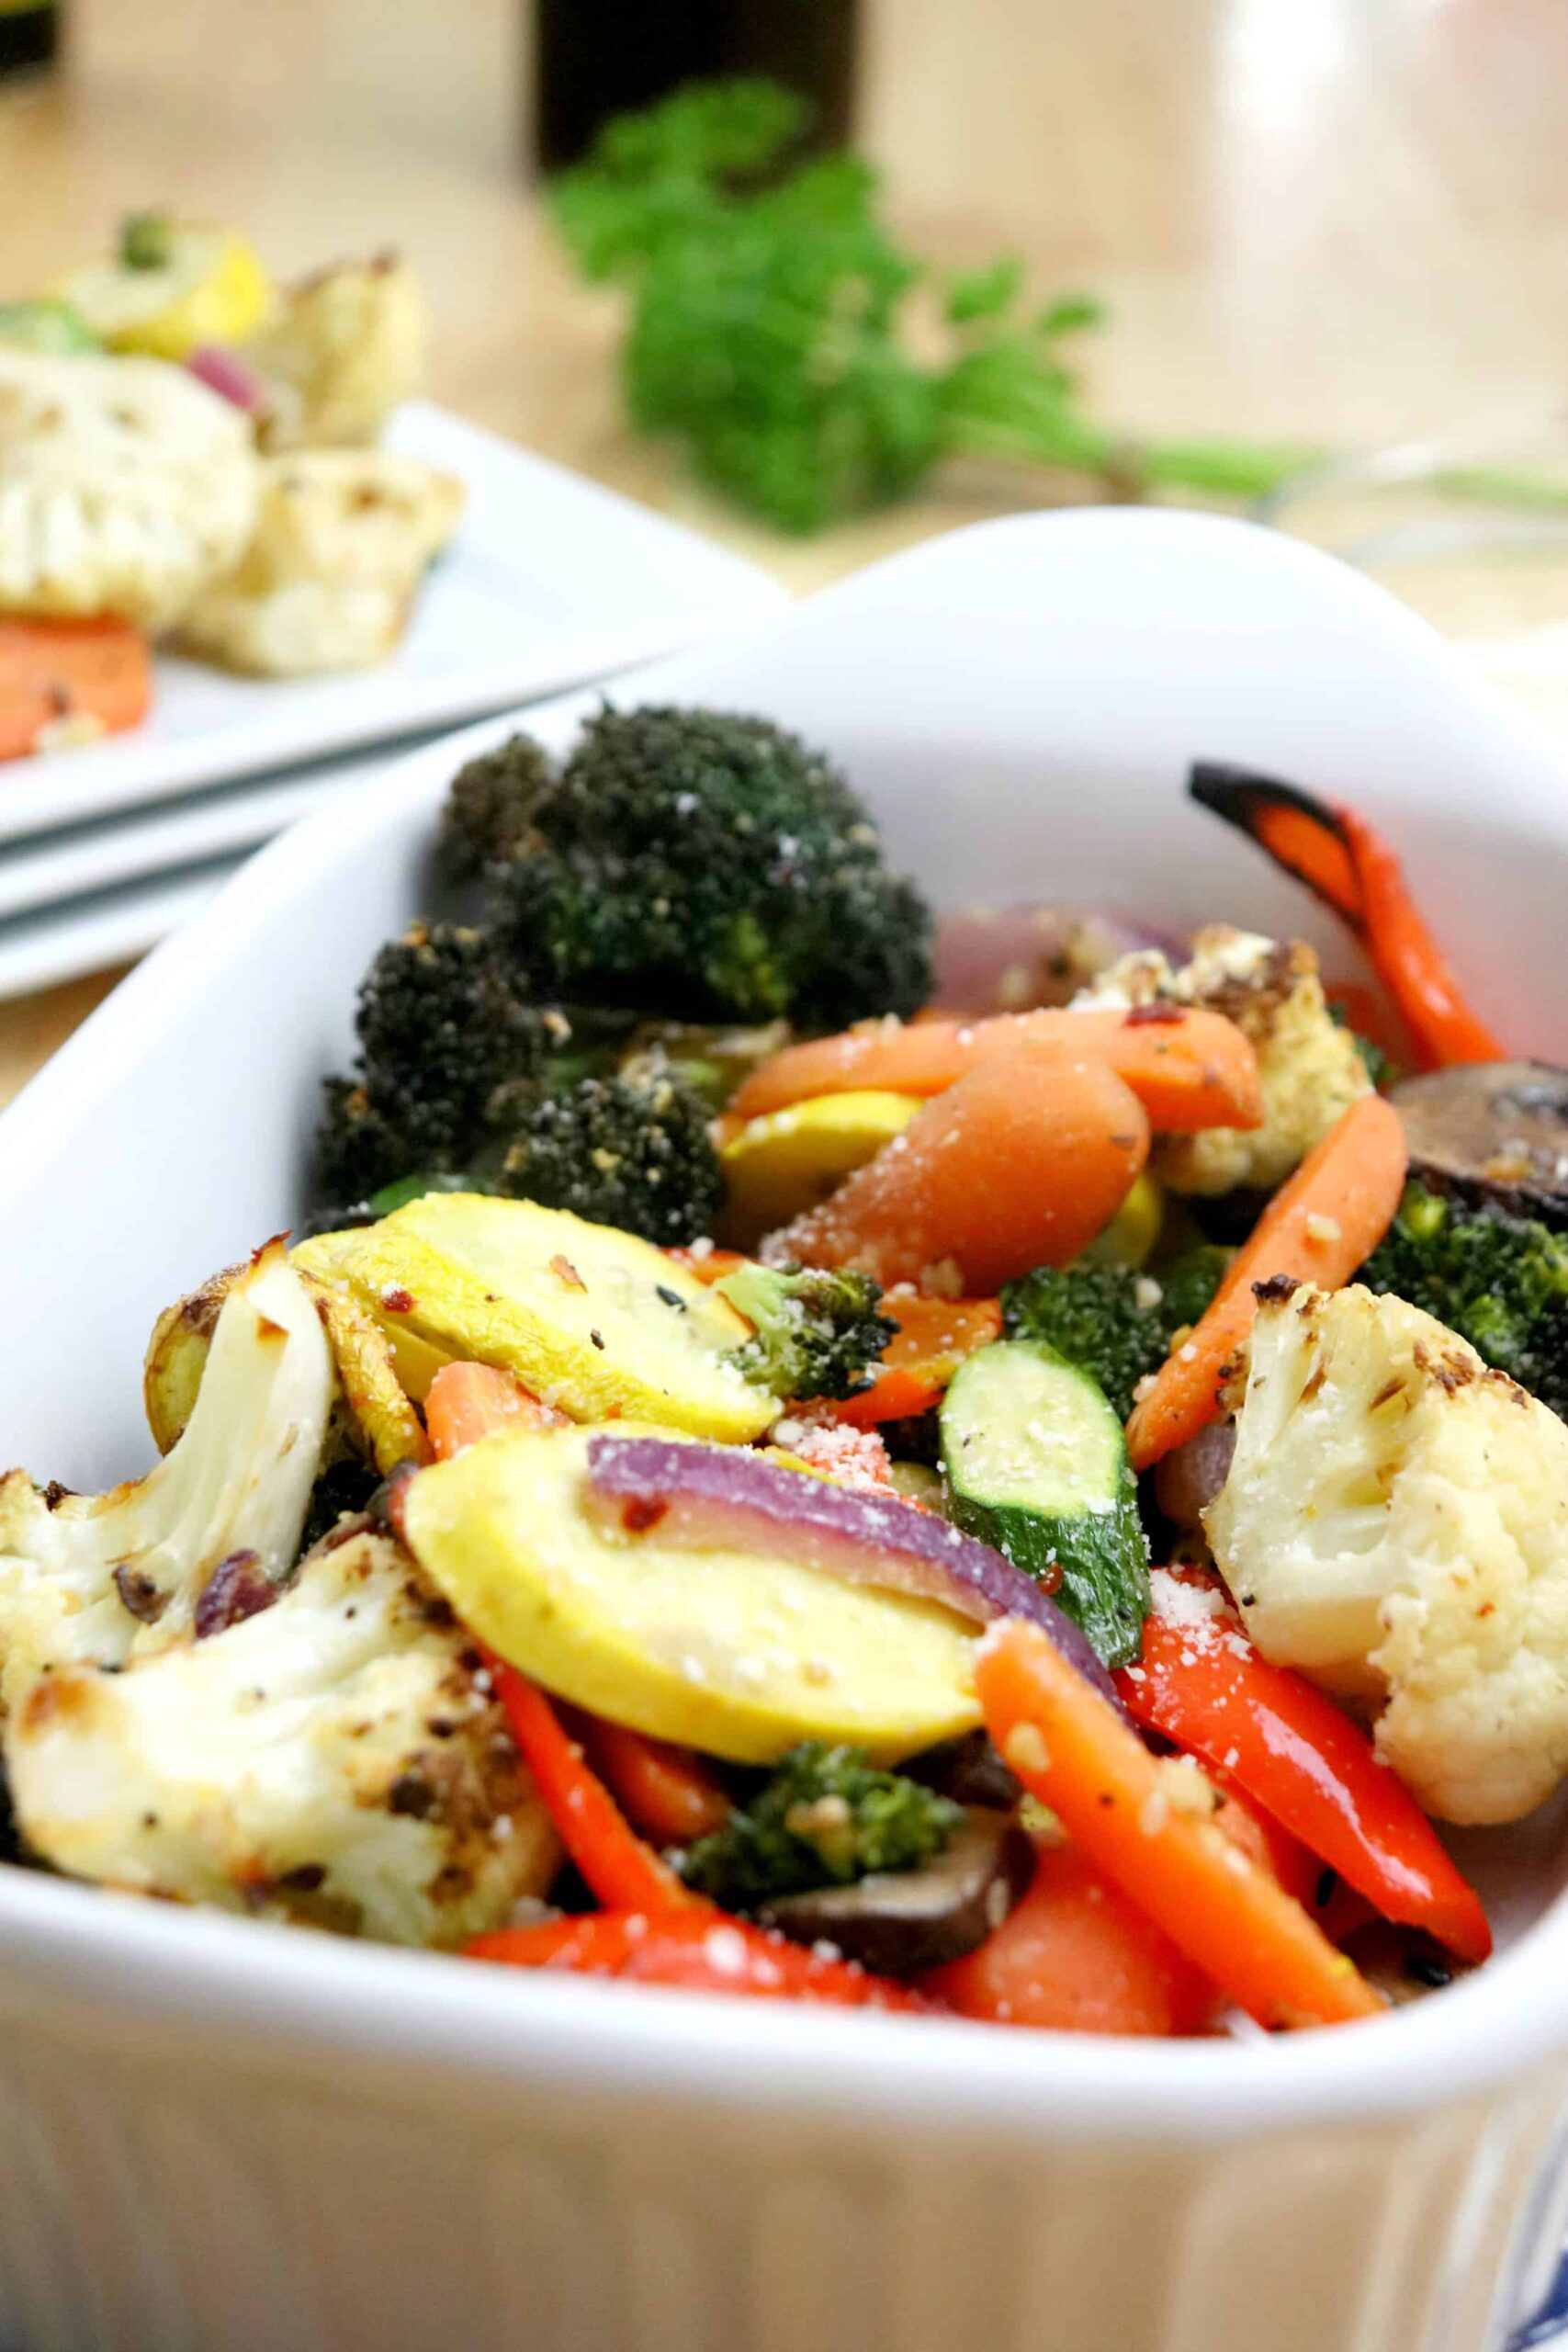 Delicious Air Fryer Roasted Vegetables